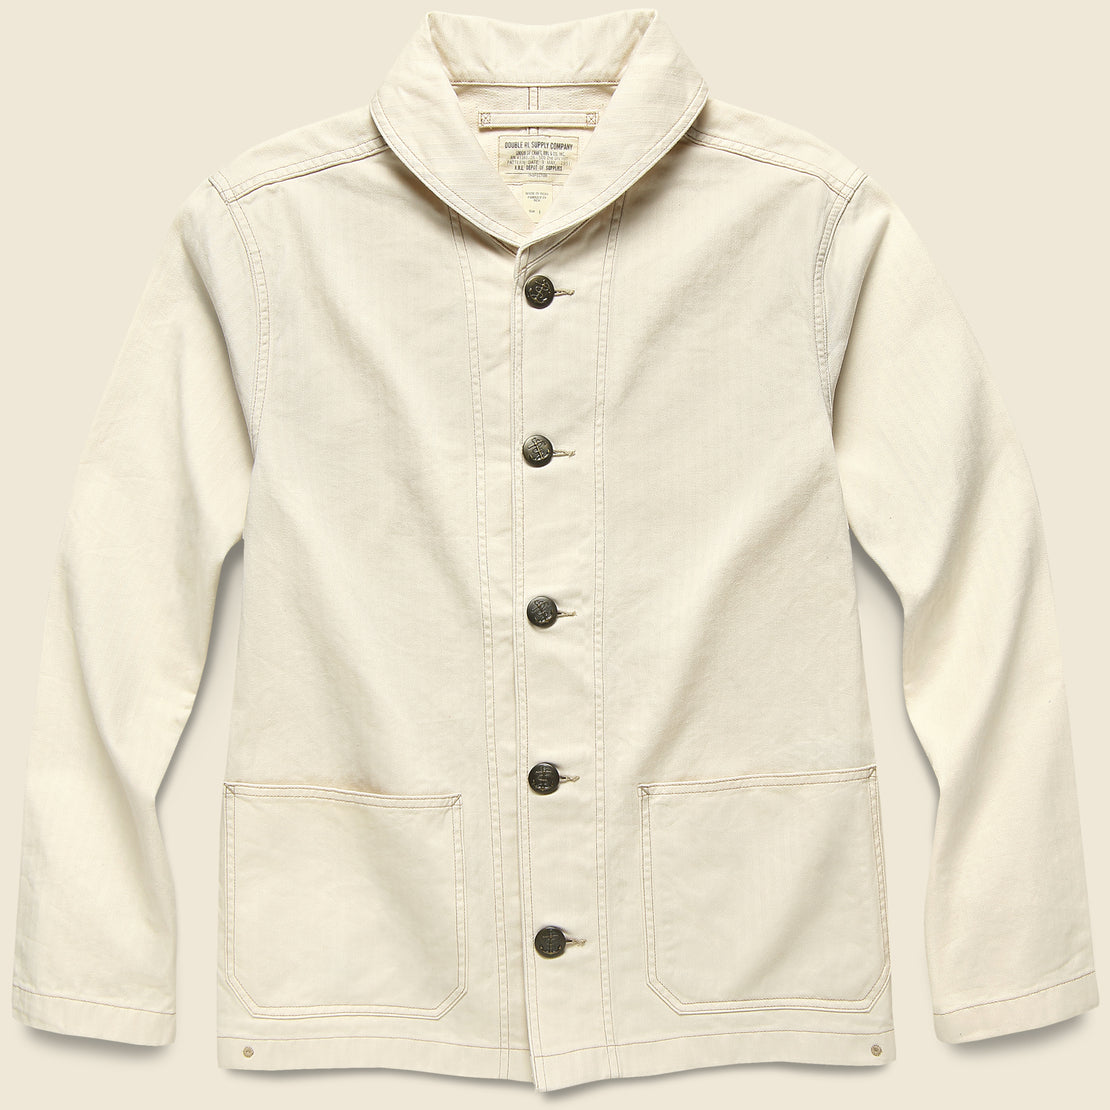 RRL Herringbone Twill Jacket - Natural Seed